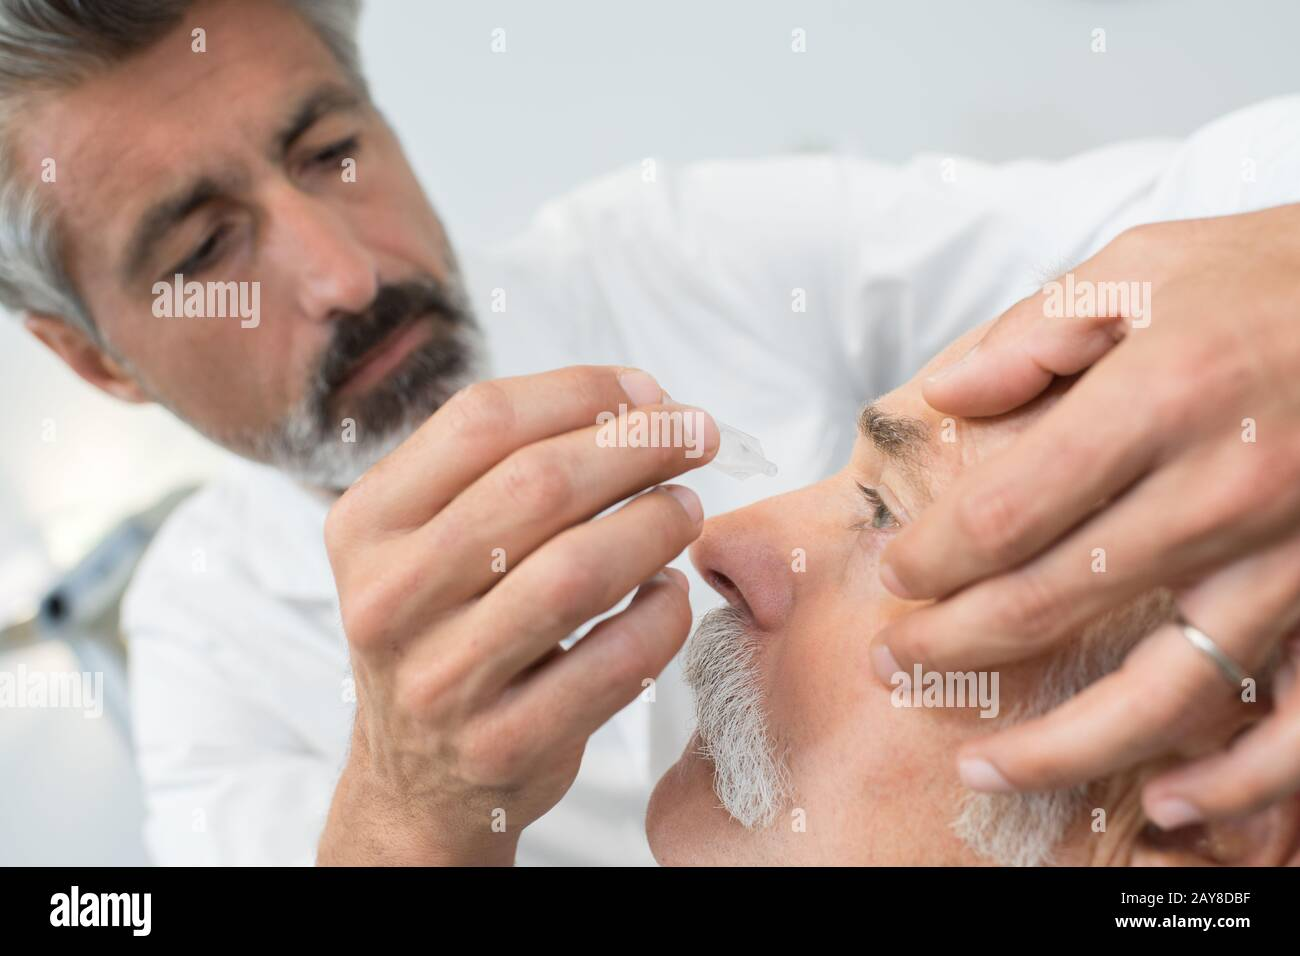 Eye Specialist Putting Eyedrops To The Patients Eye Stock Photo Alamy